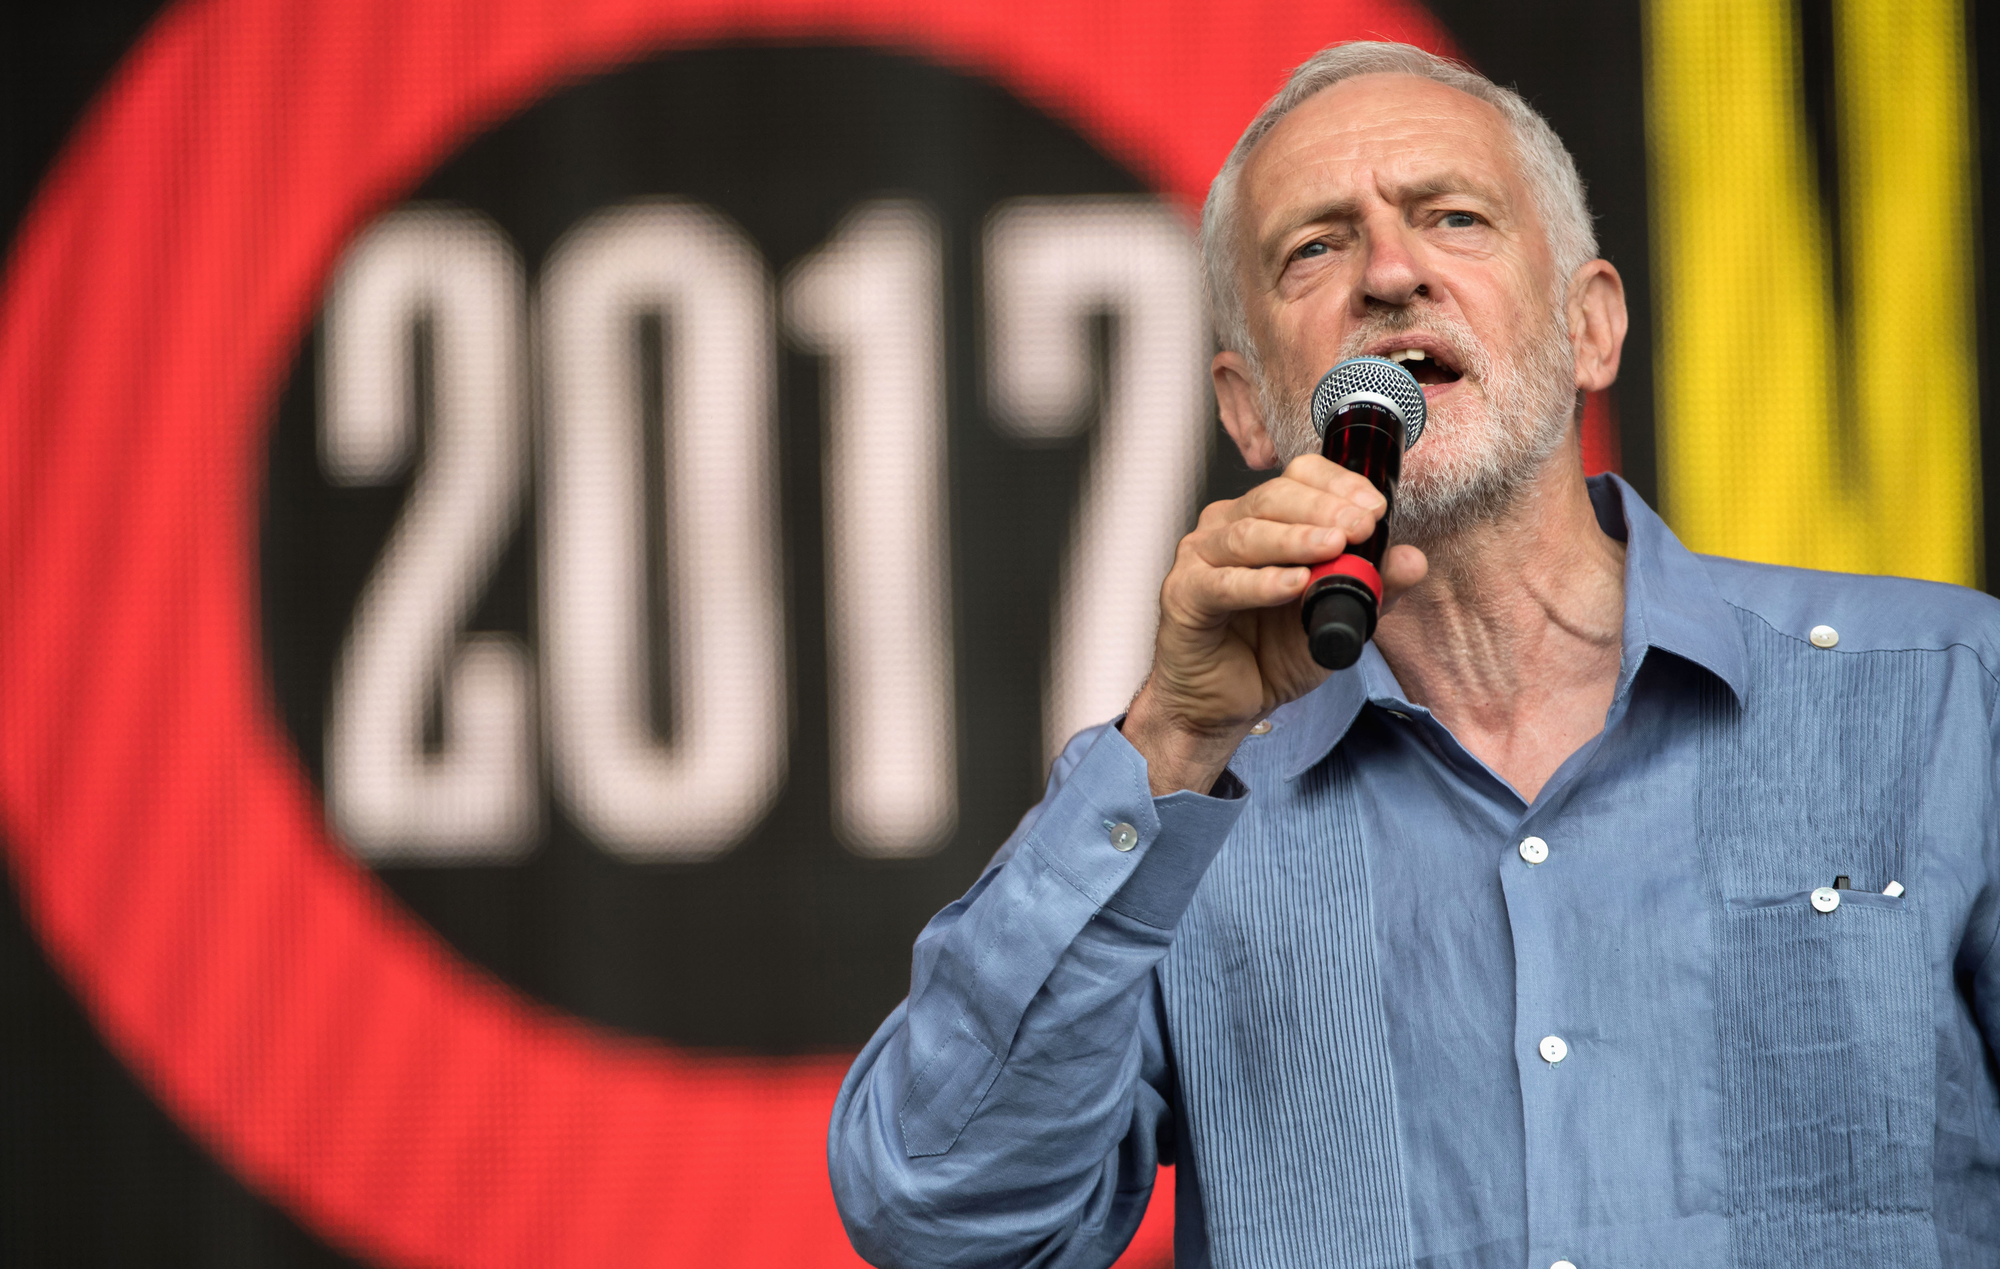 Grime4Corbyn artists reluctant to back new campaign as general election nears